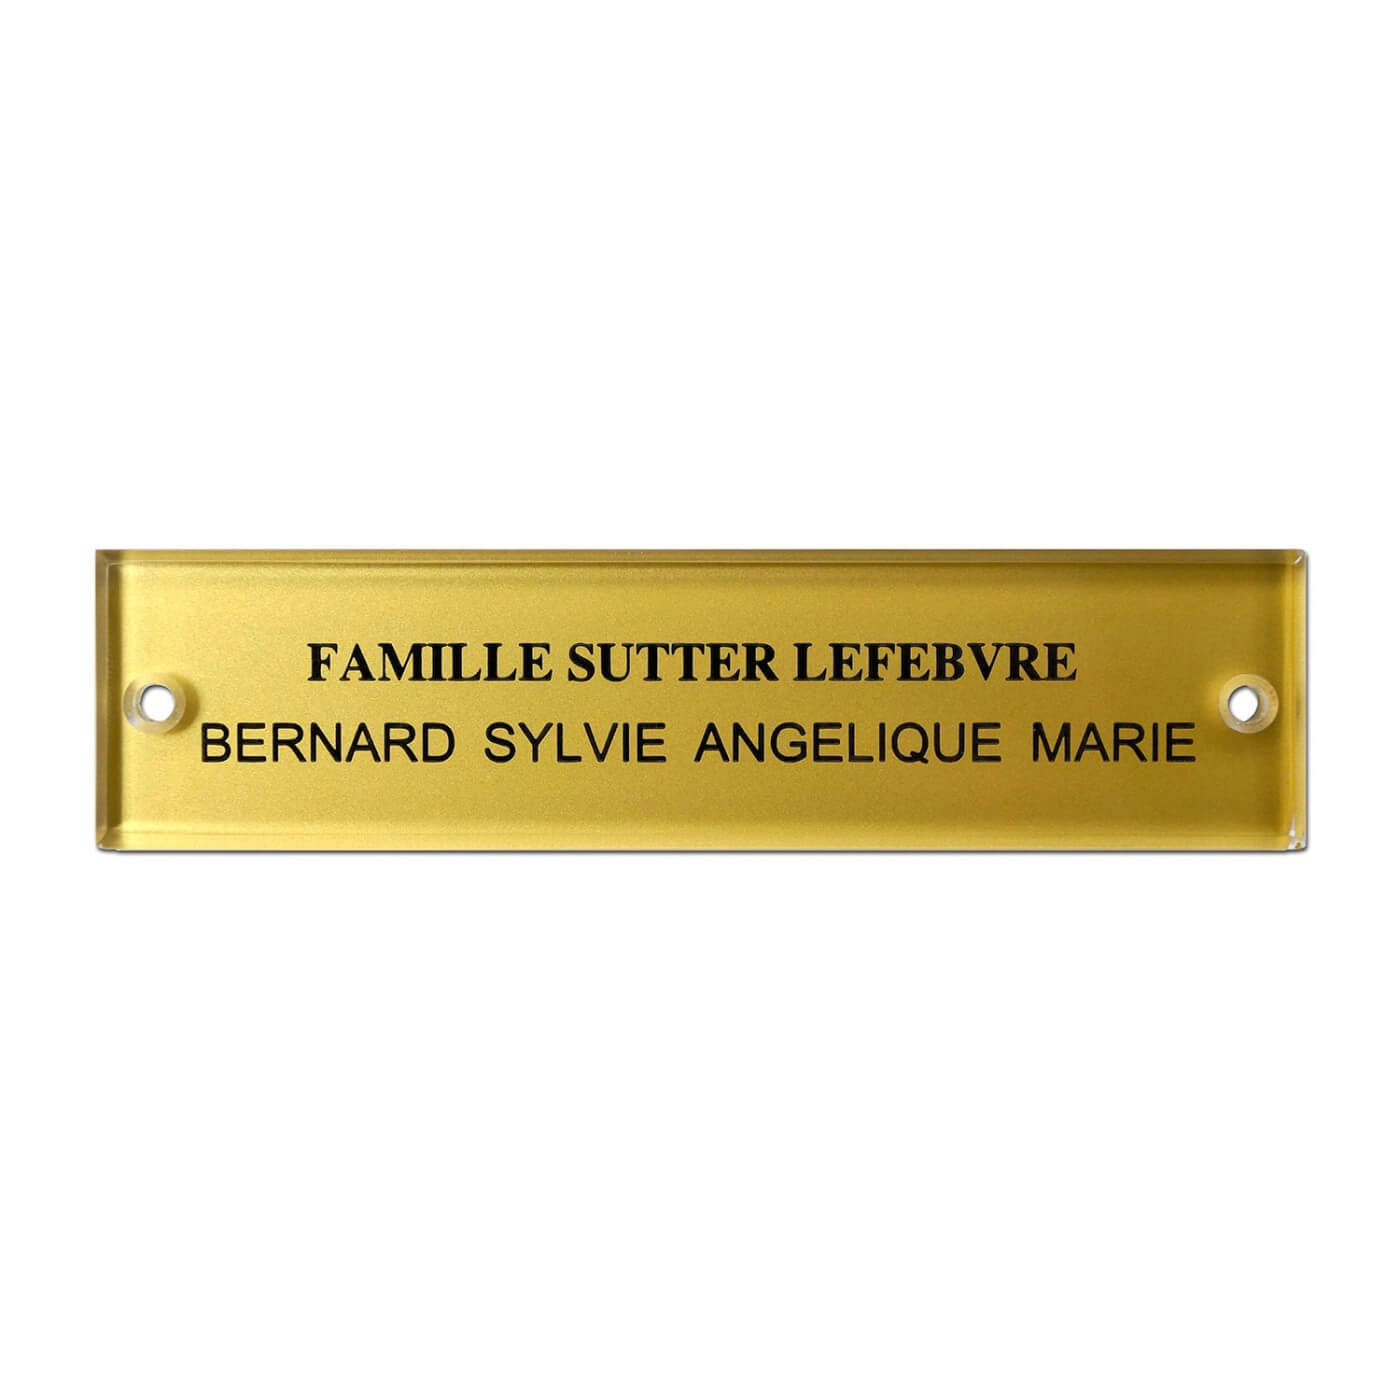 plaque de boite aux lettres en plexiglass grav 10 x 2 5 cm. Black Bedroom Furniture Sets. Home Design Ideas